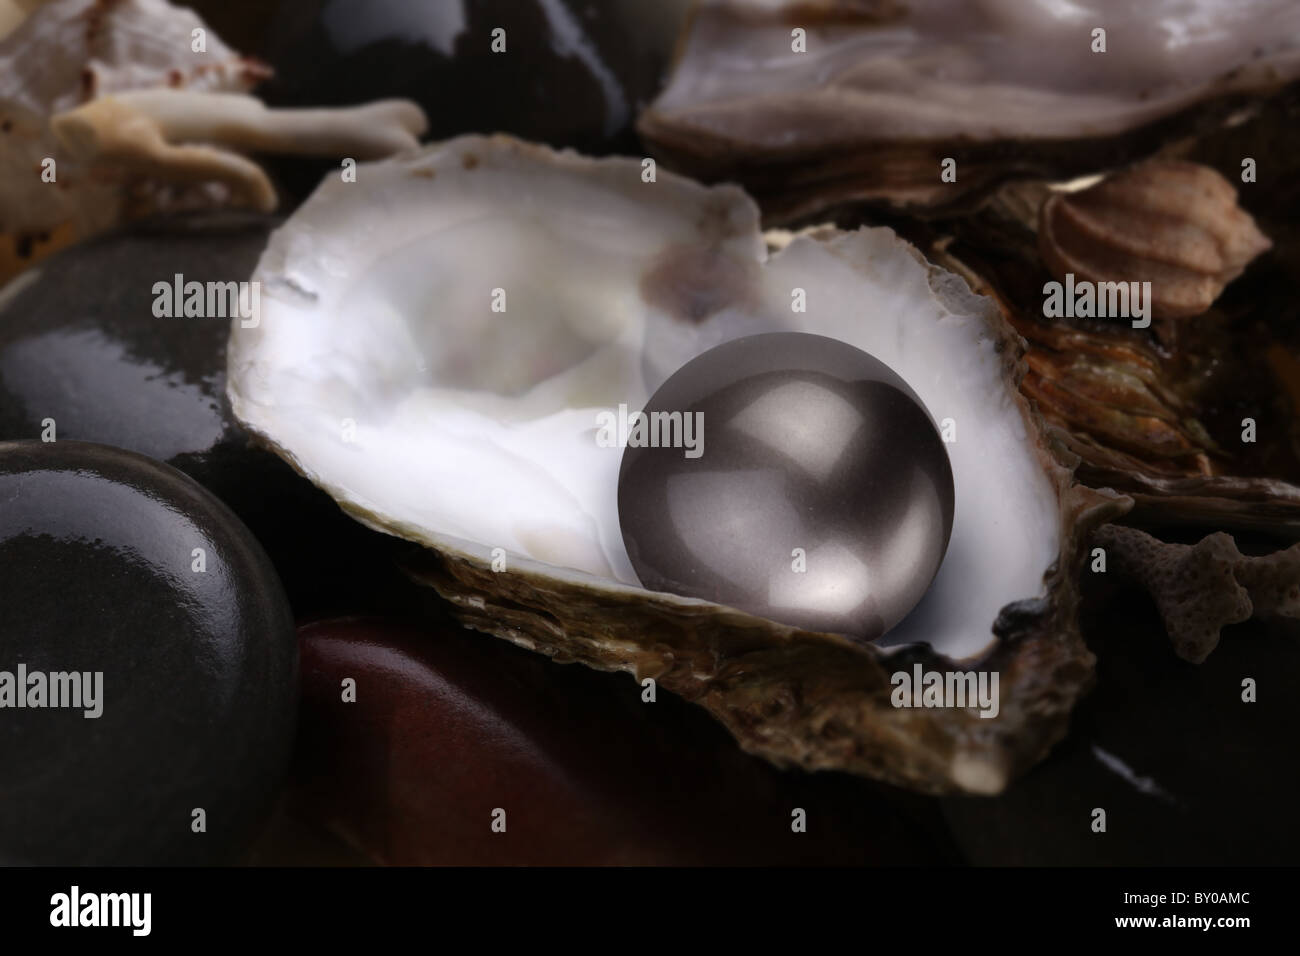 Image of a black pearl in a shell on a white background. - Stock Image